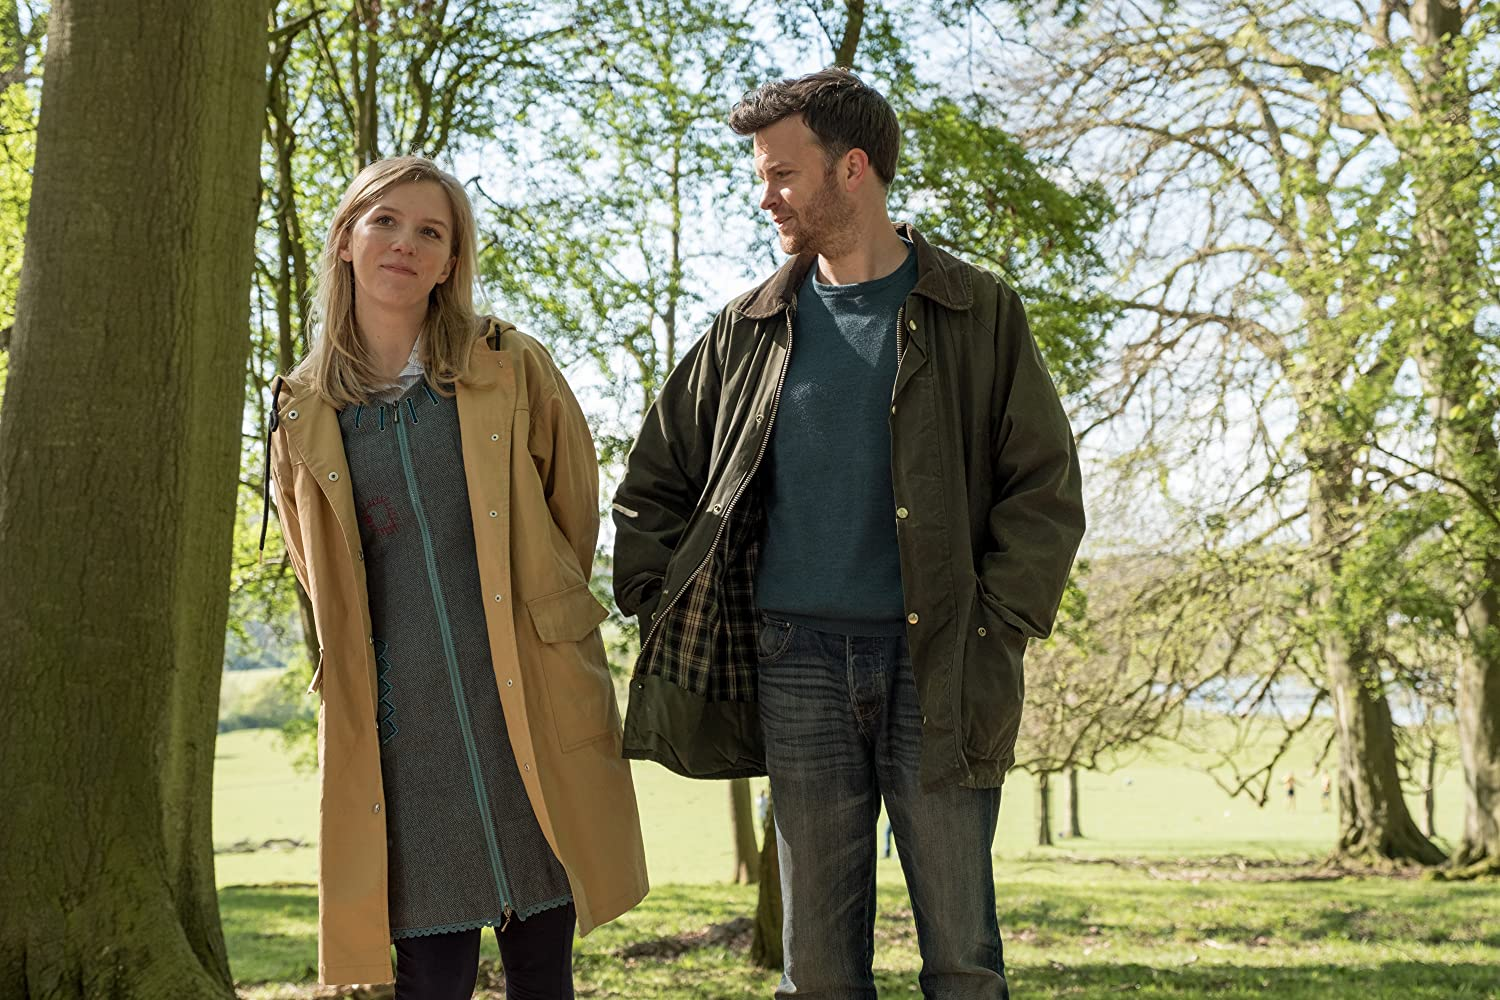 Image result for patrick 2018 film emily atack